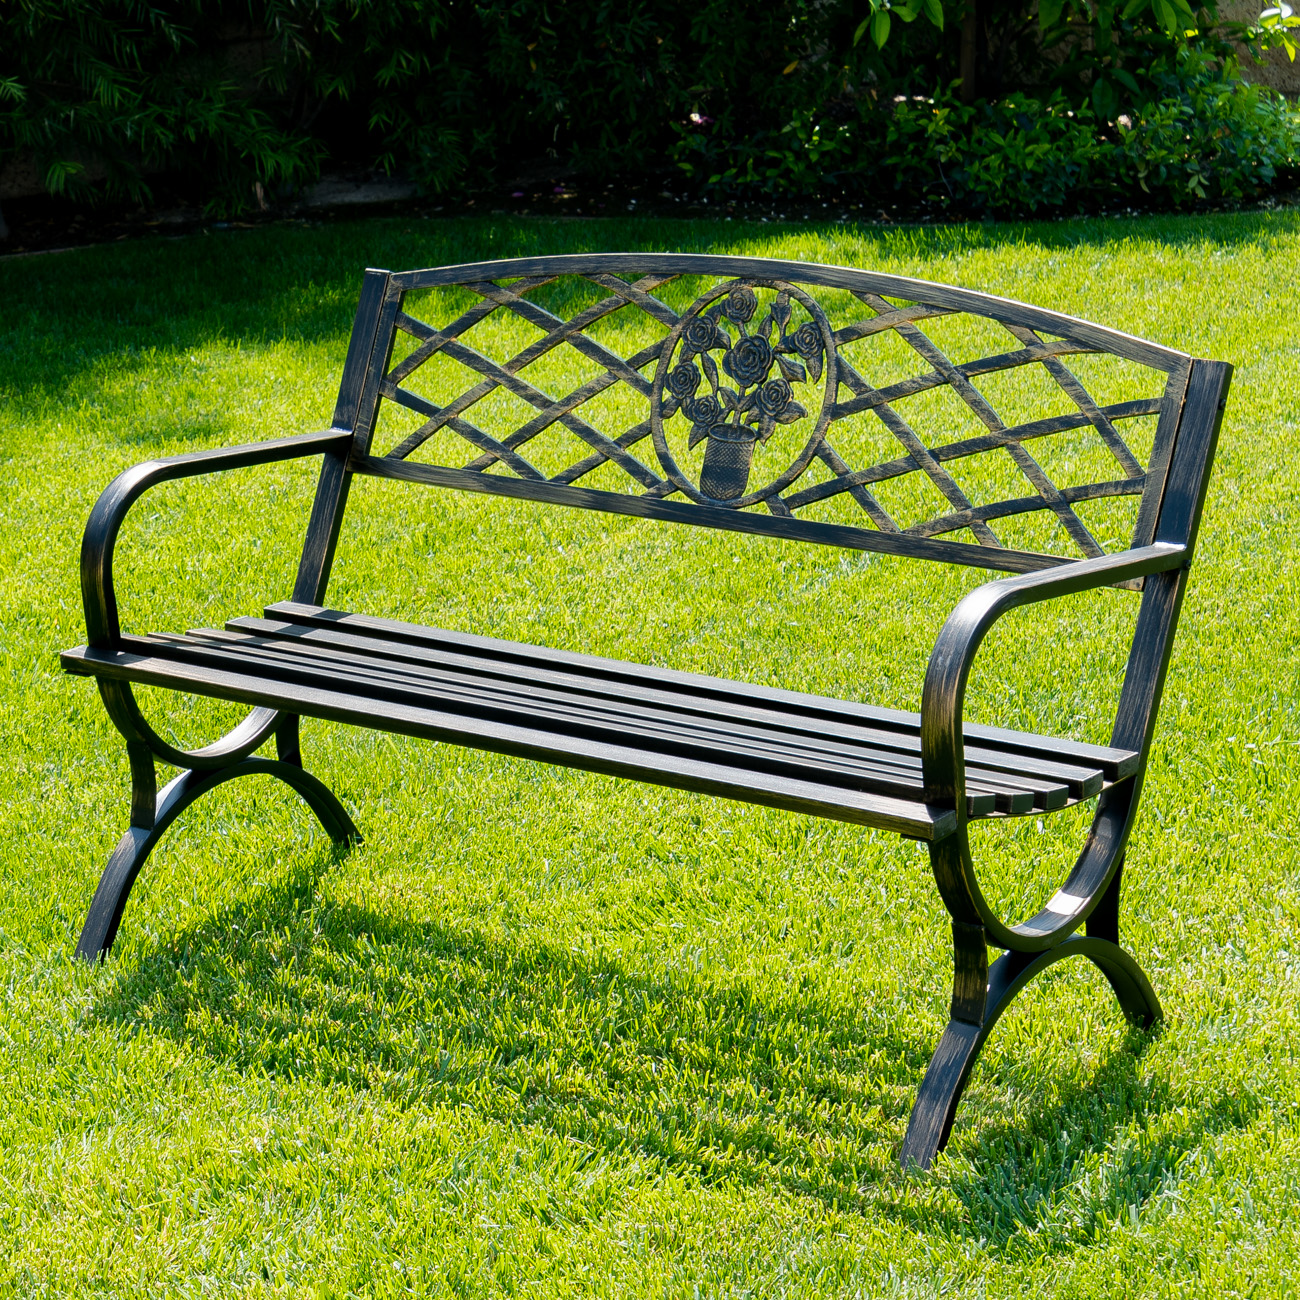 Wooden Park Benches Front Outdoor Bench Patio Chair Metal Garden Furniture Deck